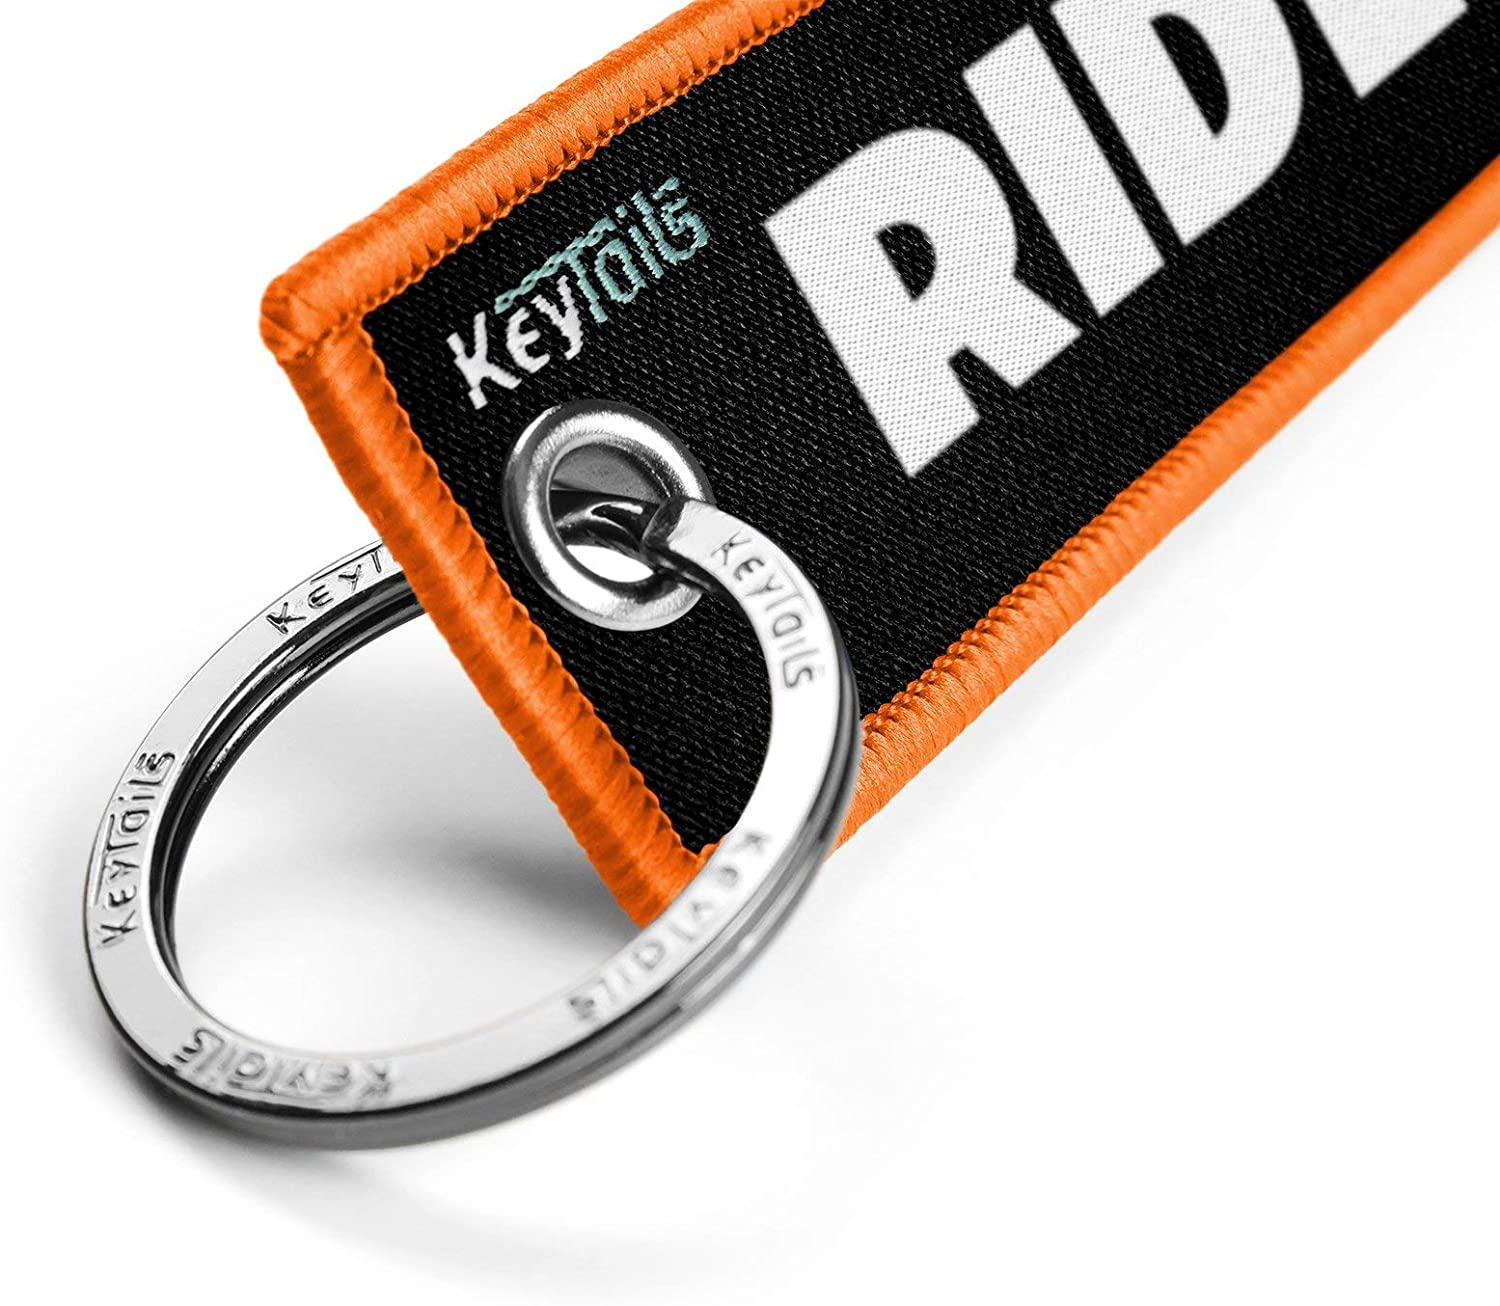 Scooter Premium Quality Key Tag for Motorcycle UTV ATV KEYTAILS Keychains Ride Or Die